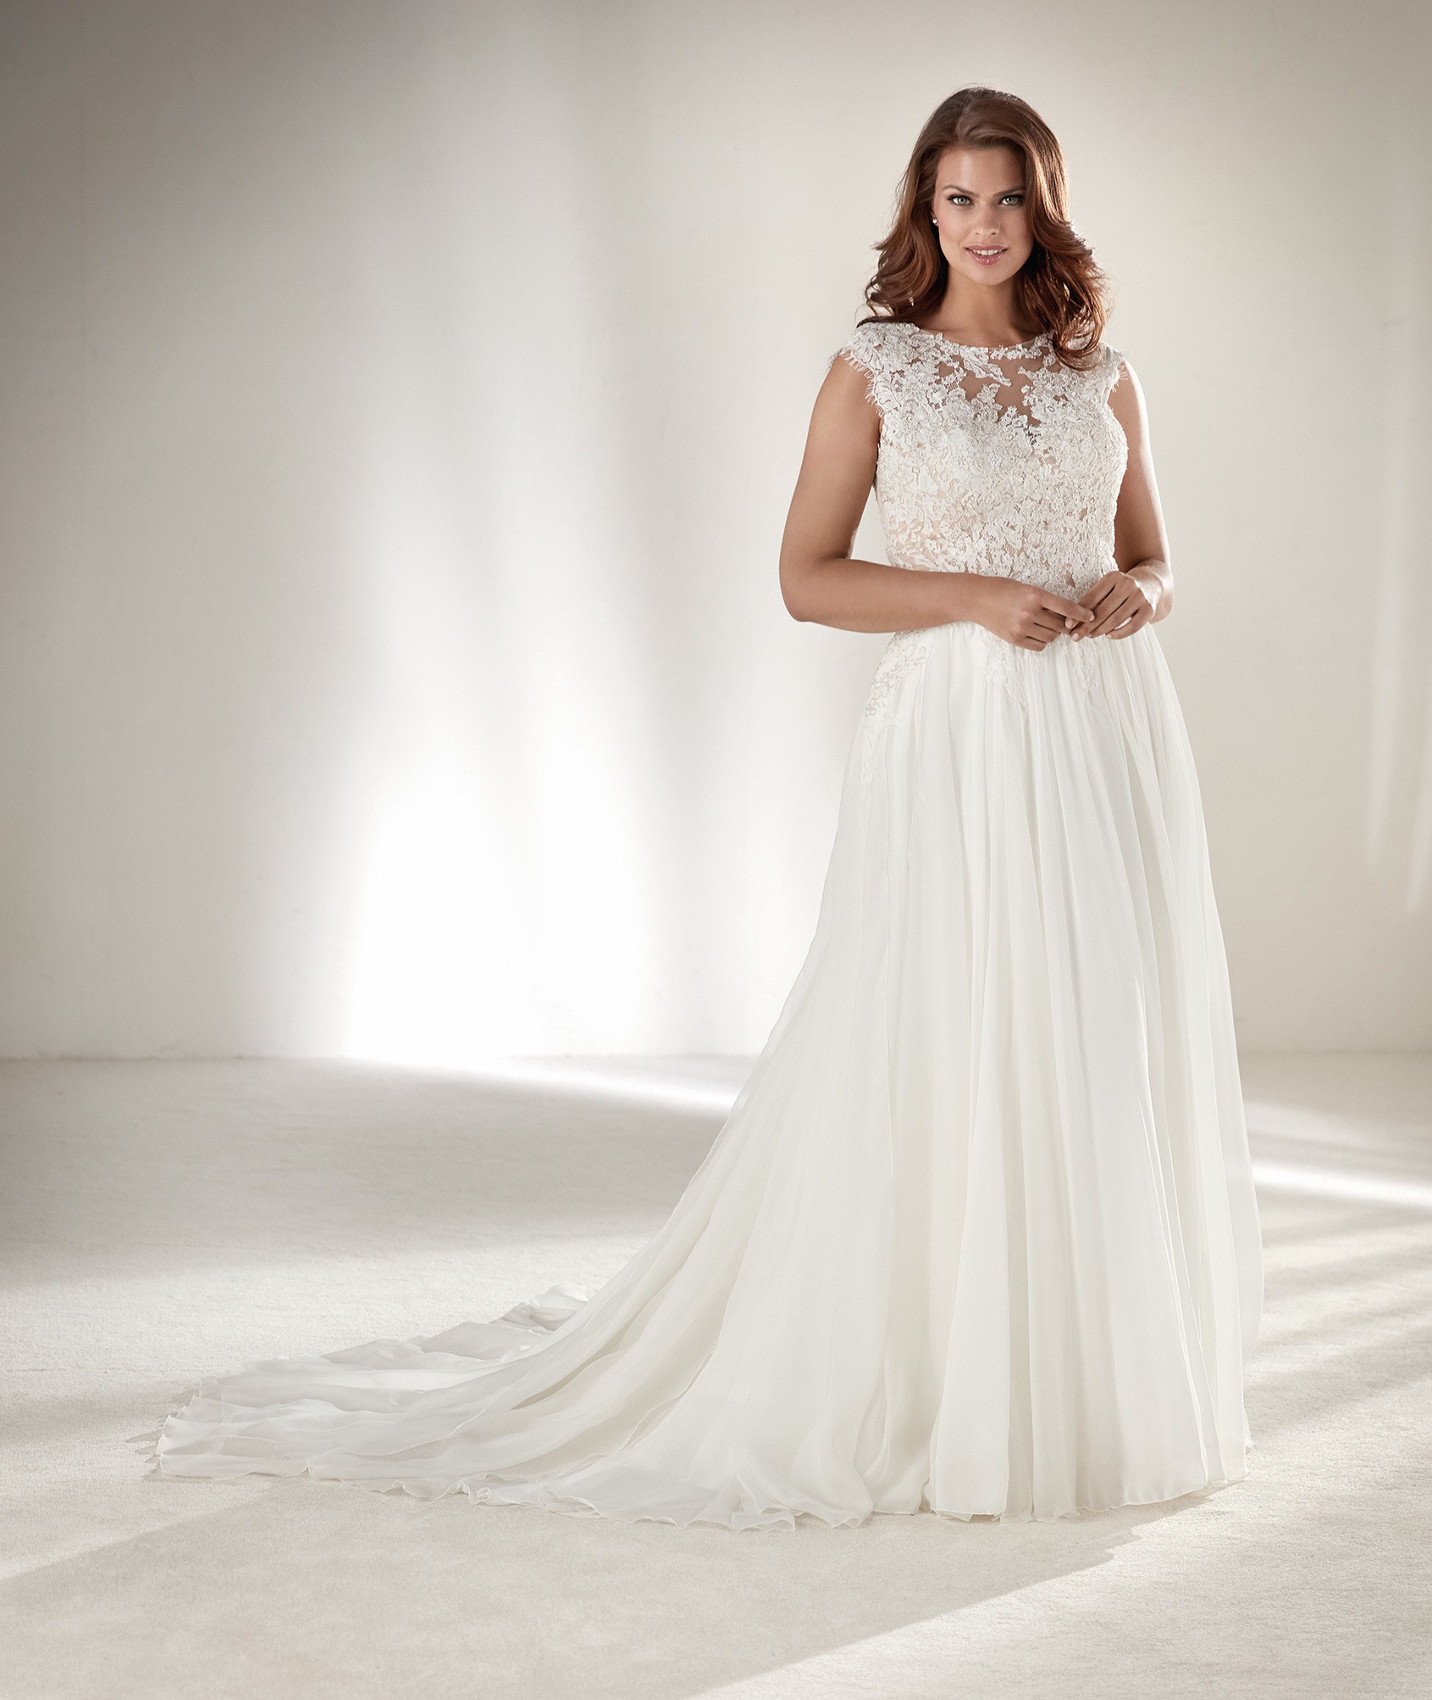 Atlantis wedding dress